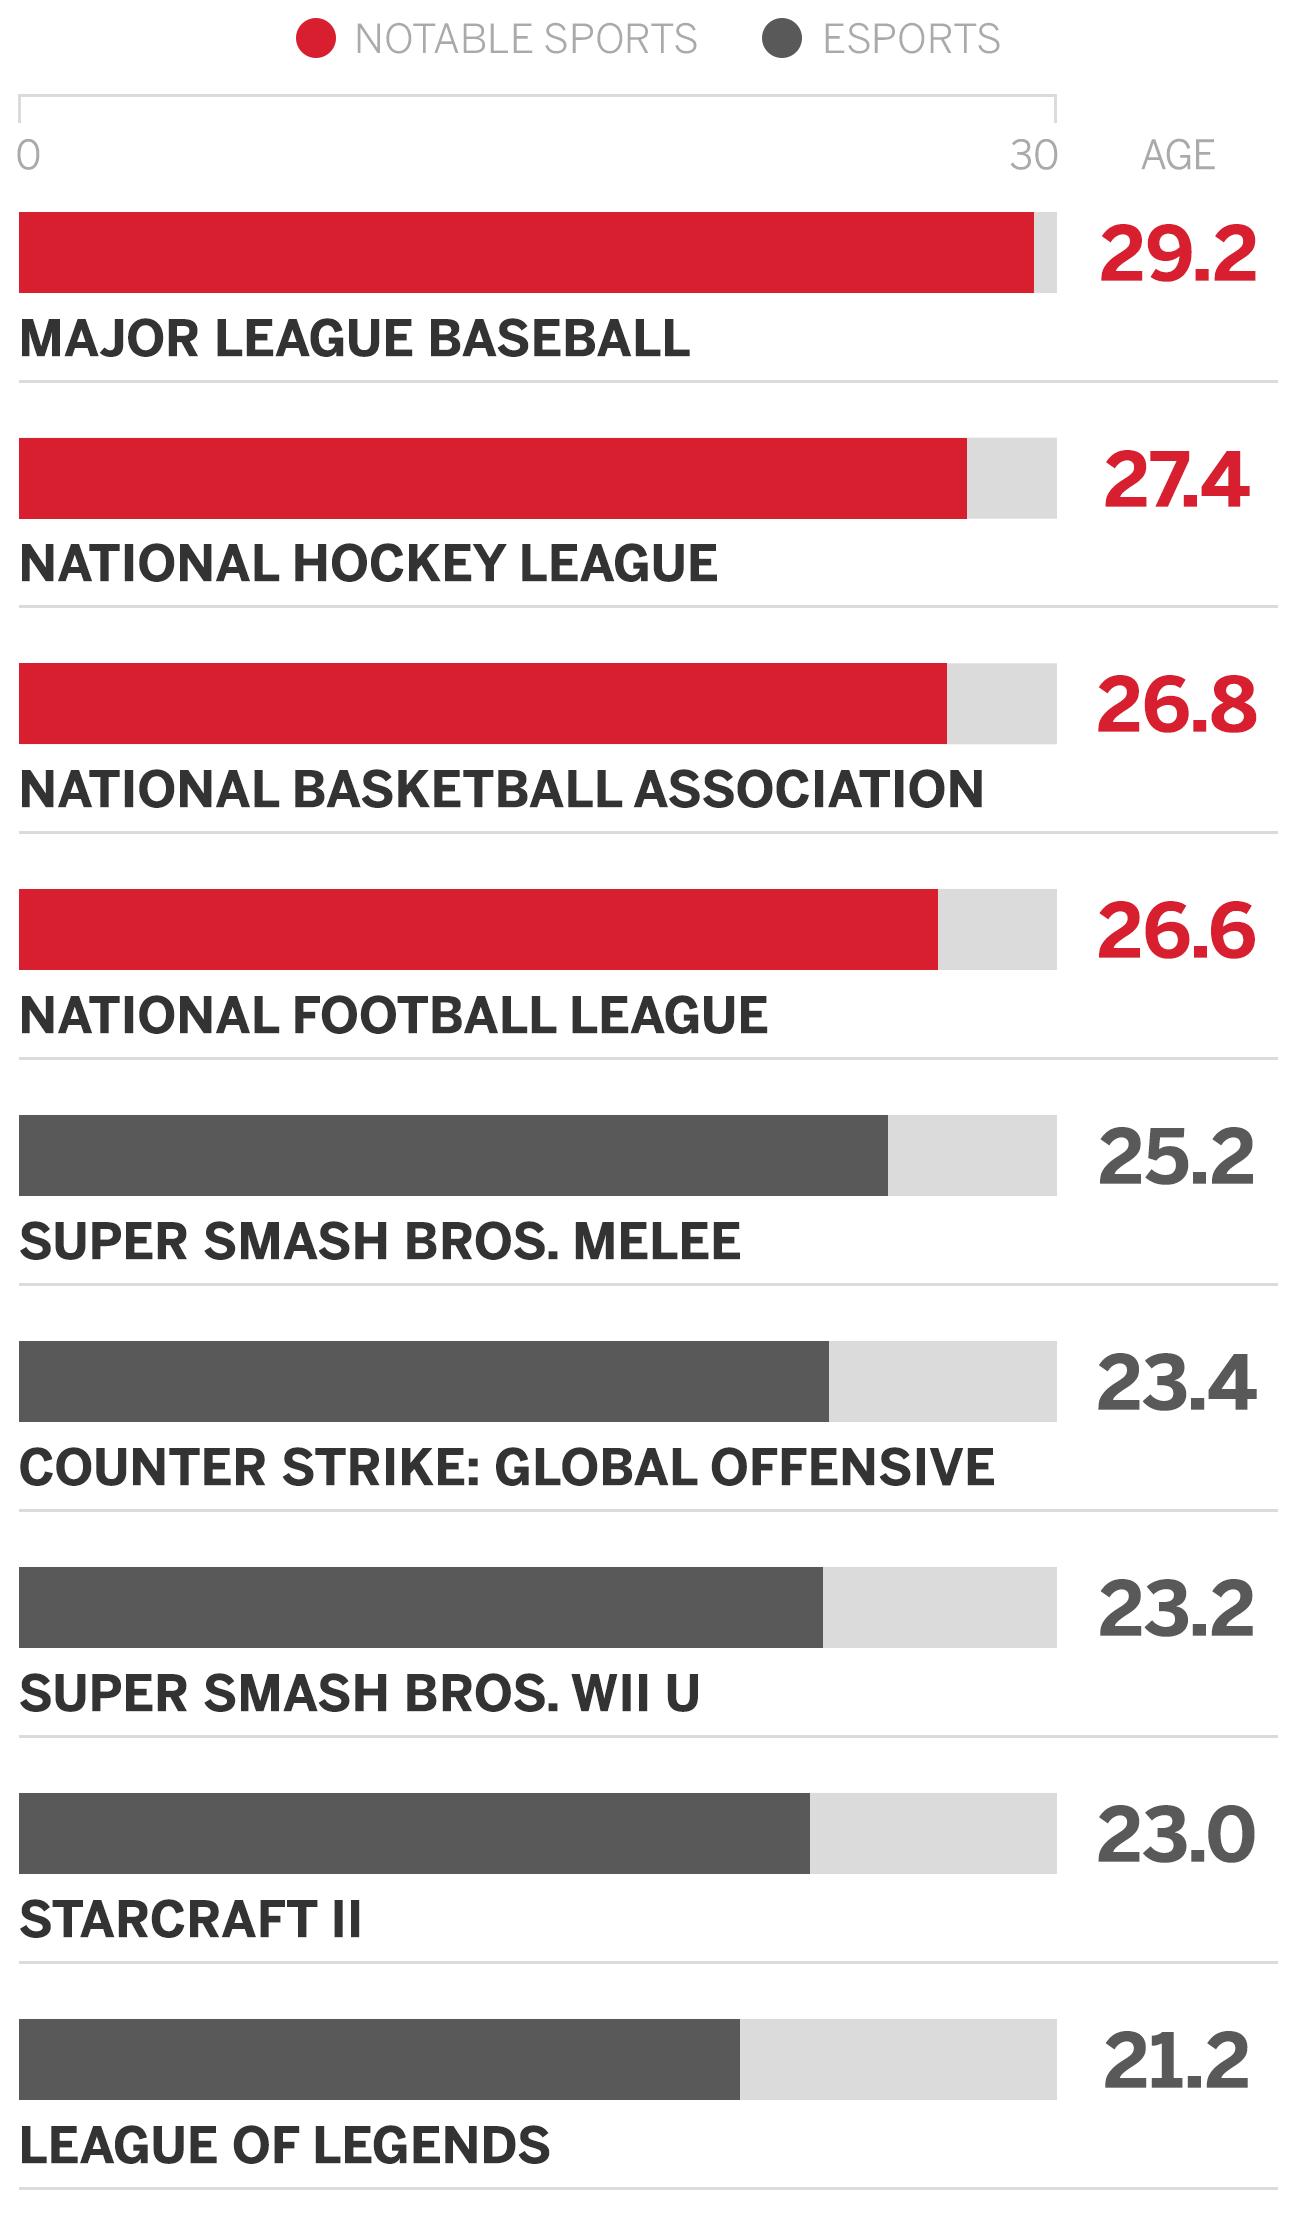 The average age in esports versus NFL, NBA, MLB, NHL